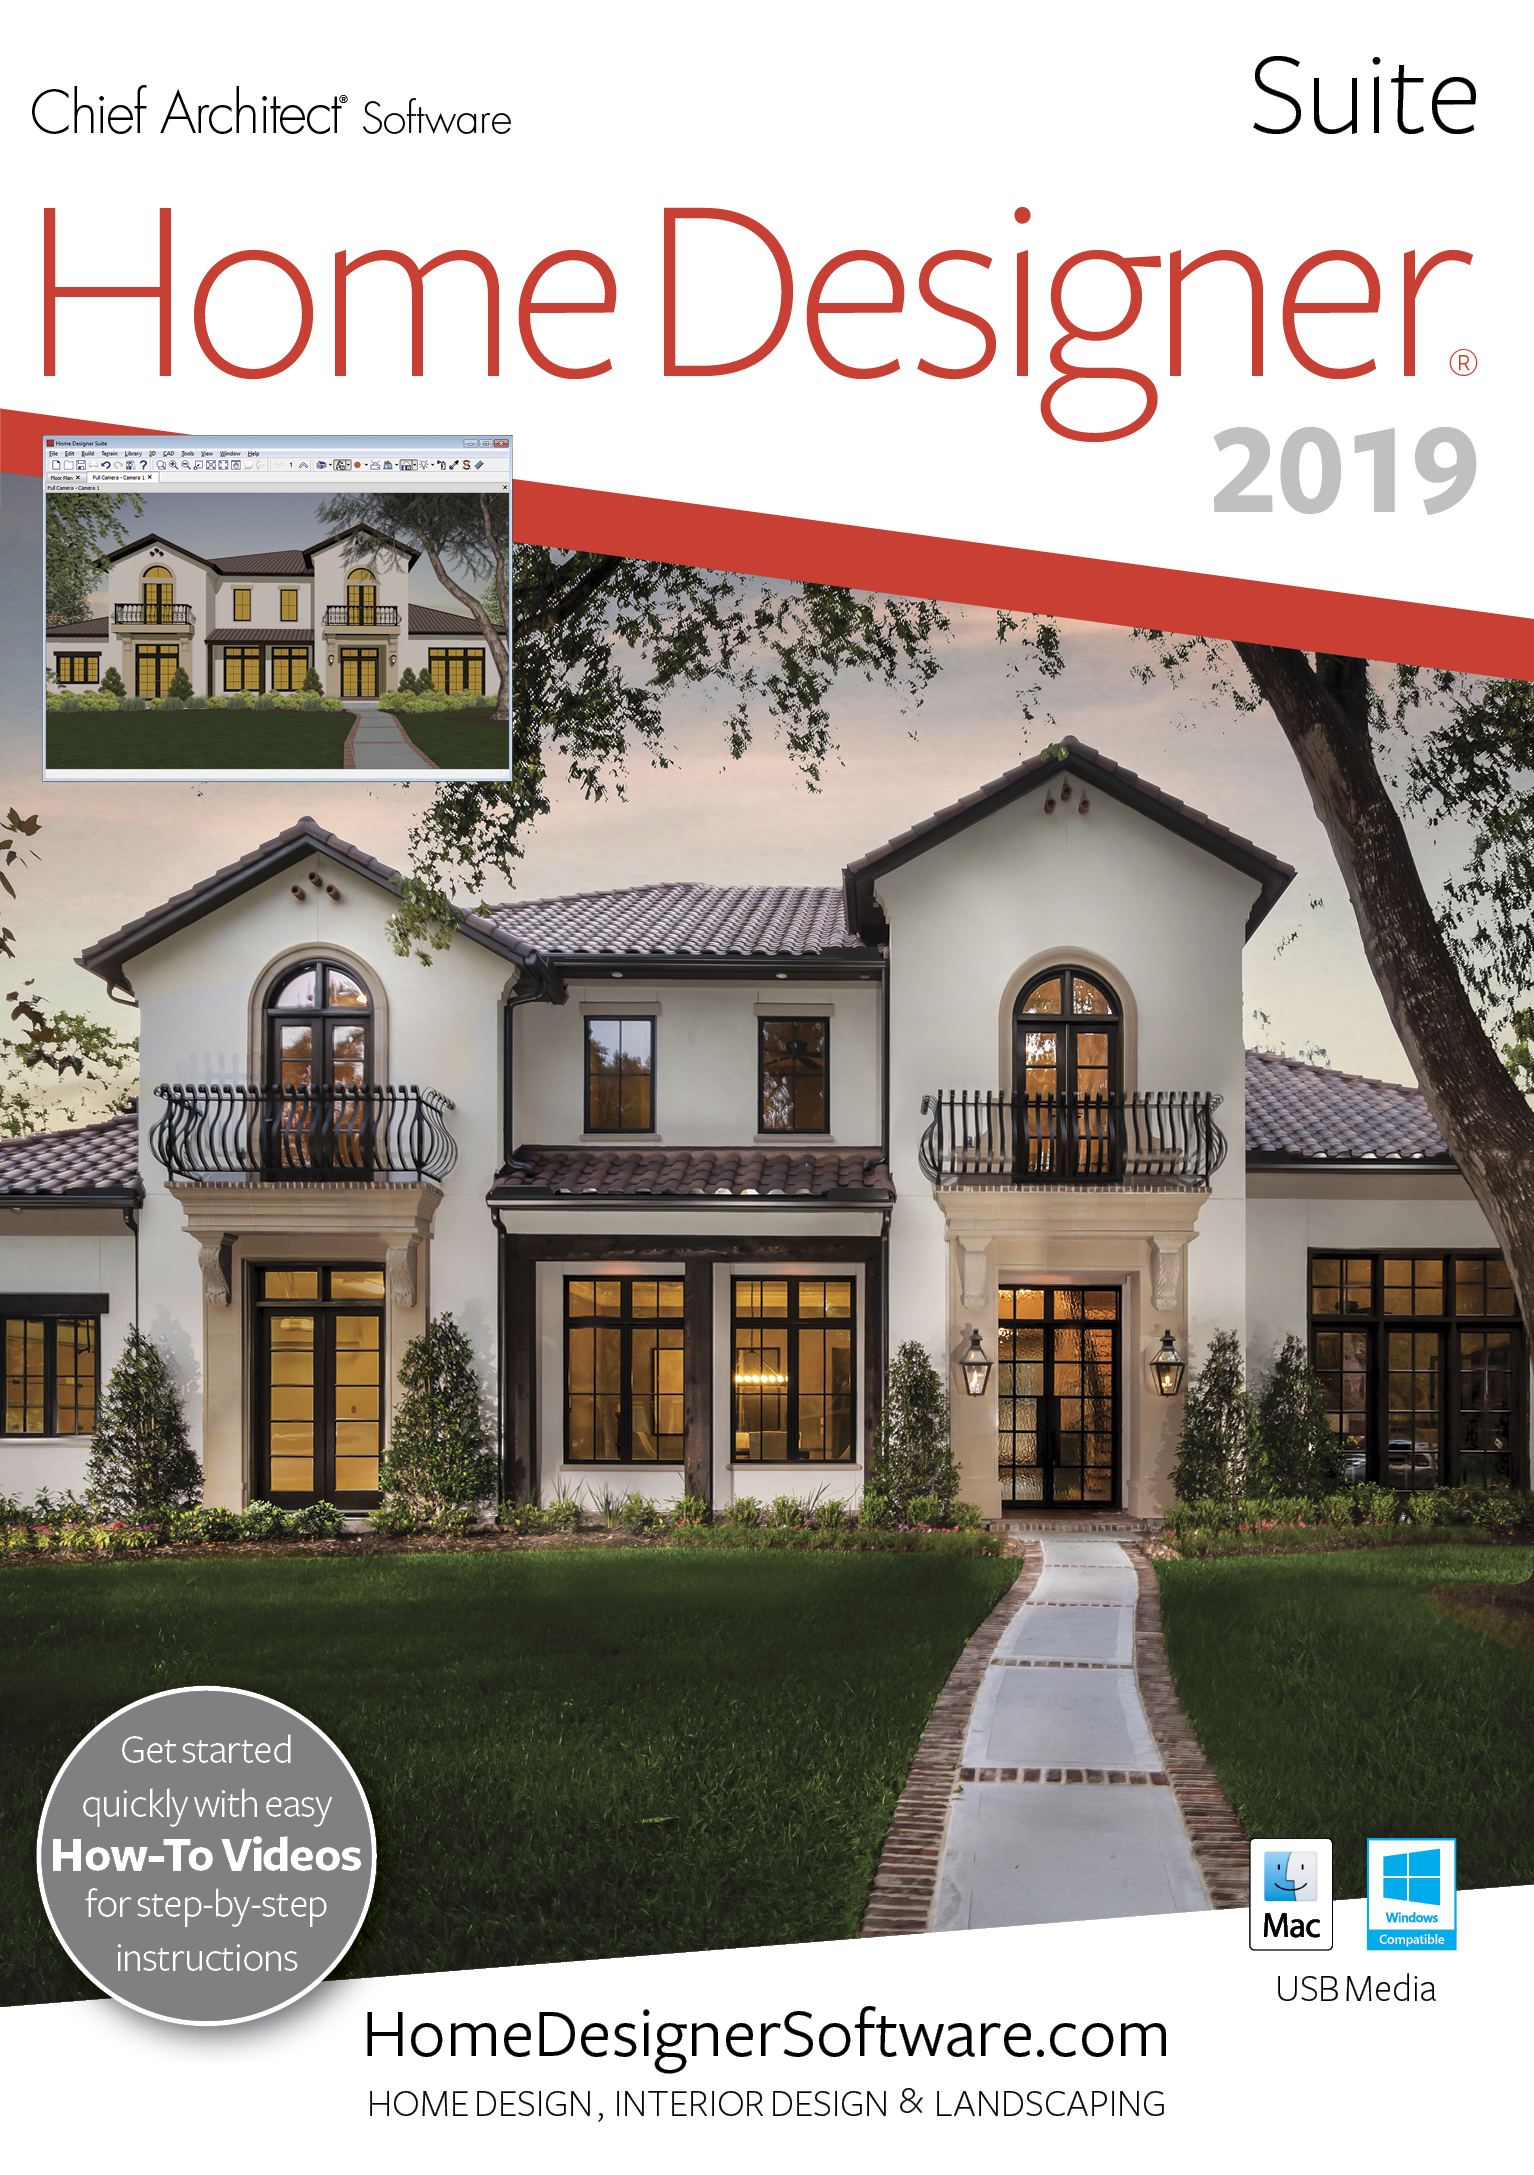 Home Designer Suite 2019 Download product image